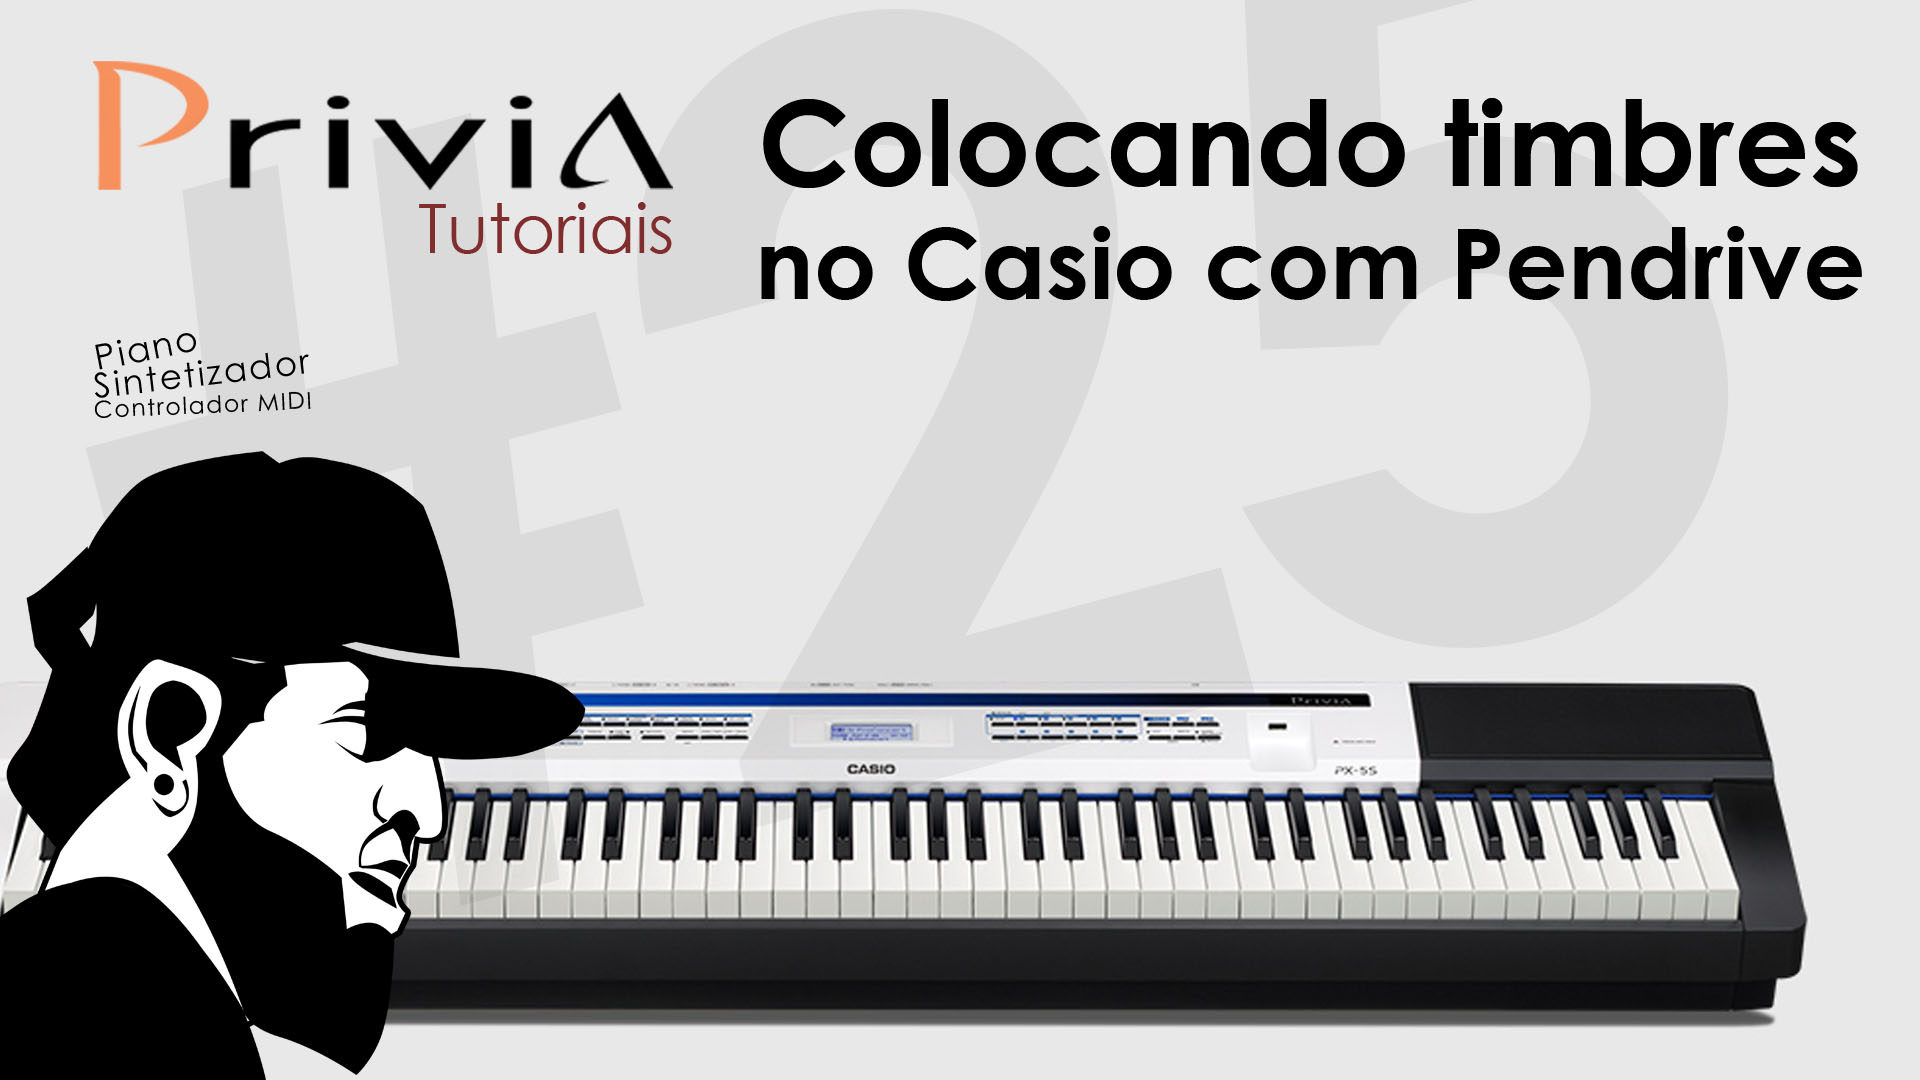 Como Colocar Timbres Usando Pendrive | Tutorial Casio Privia PX-5S #25